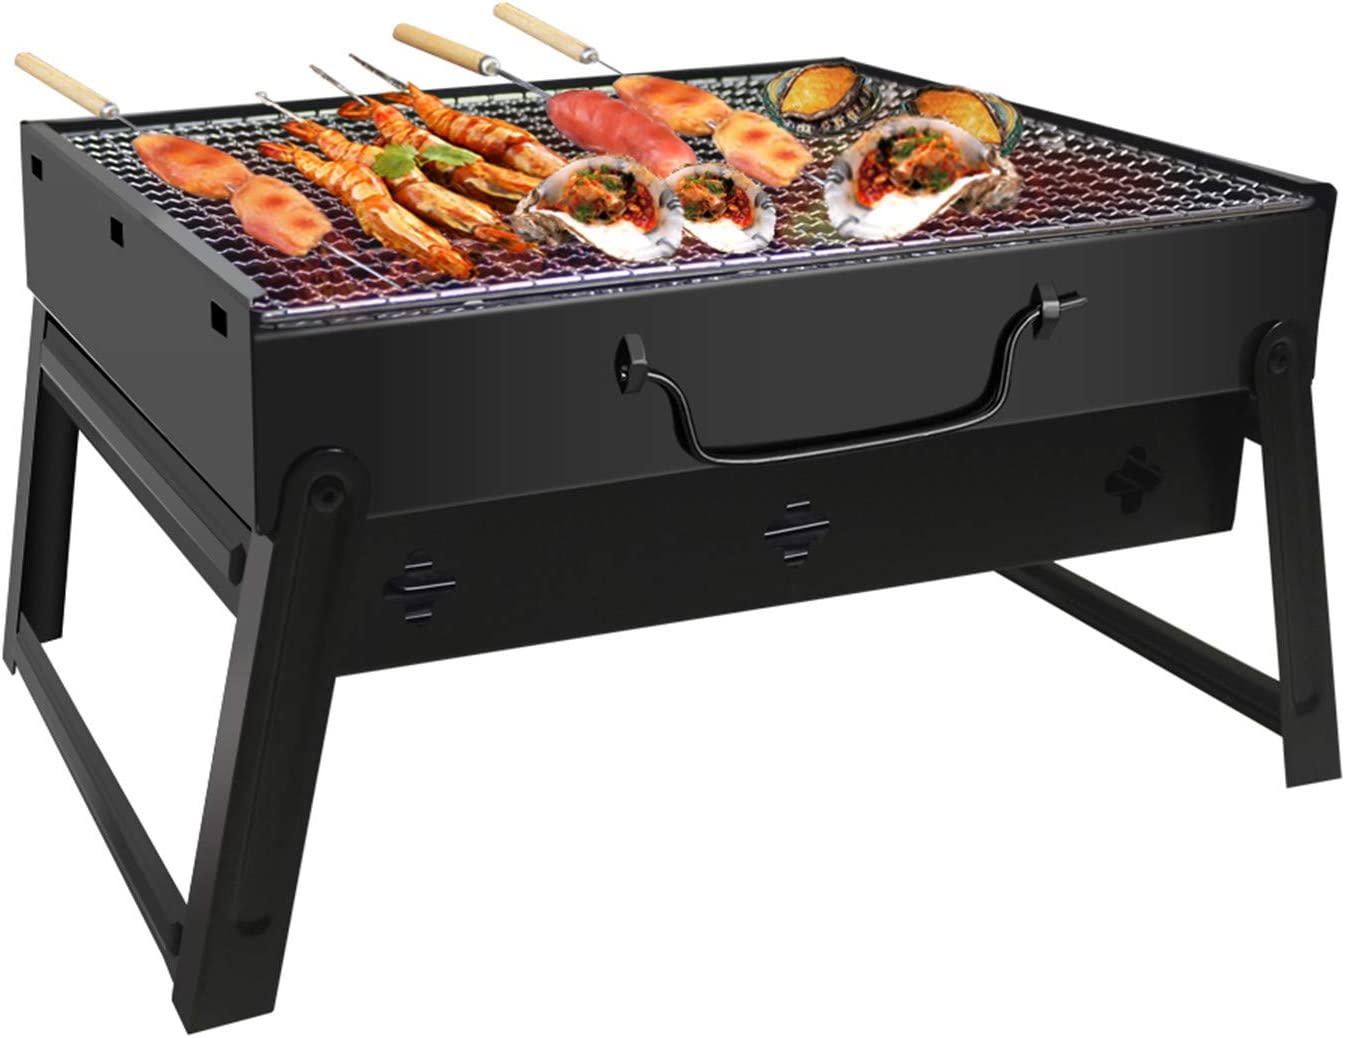 BBQ Smoker Grill for Outdoor Cooking Camping Hiking Party Black JiaDa Portable Charcoal Barbecue Grill